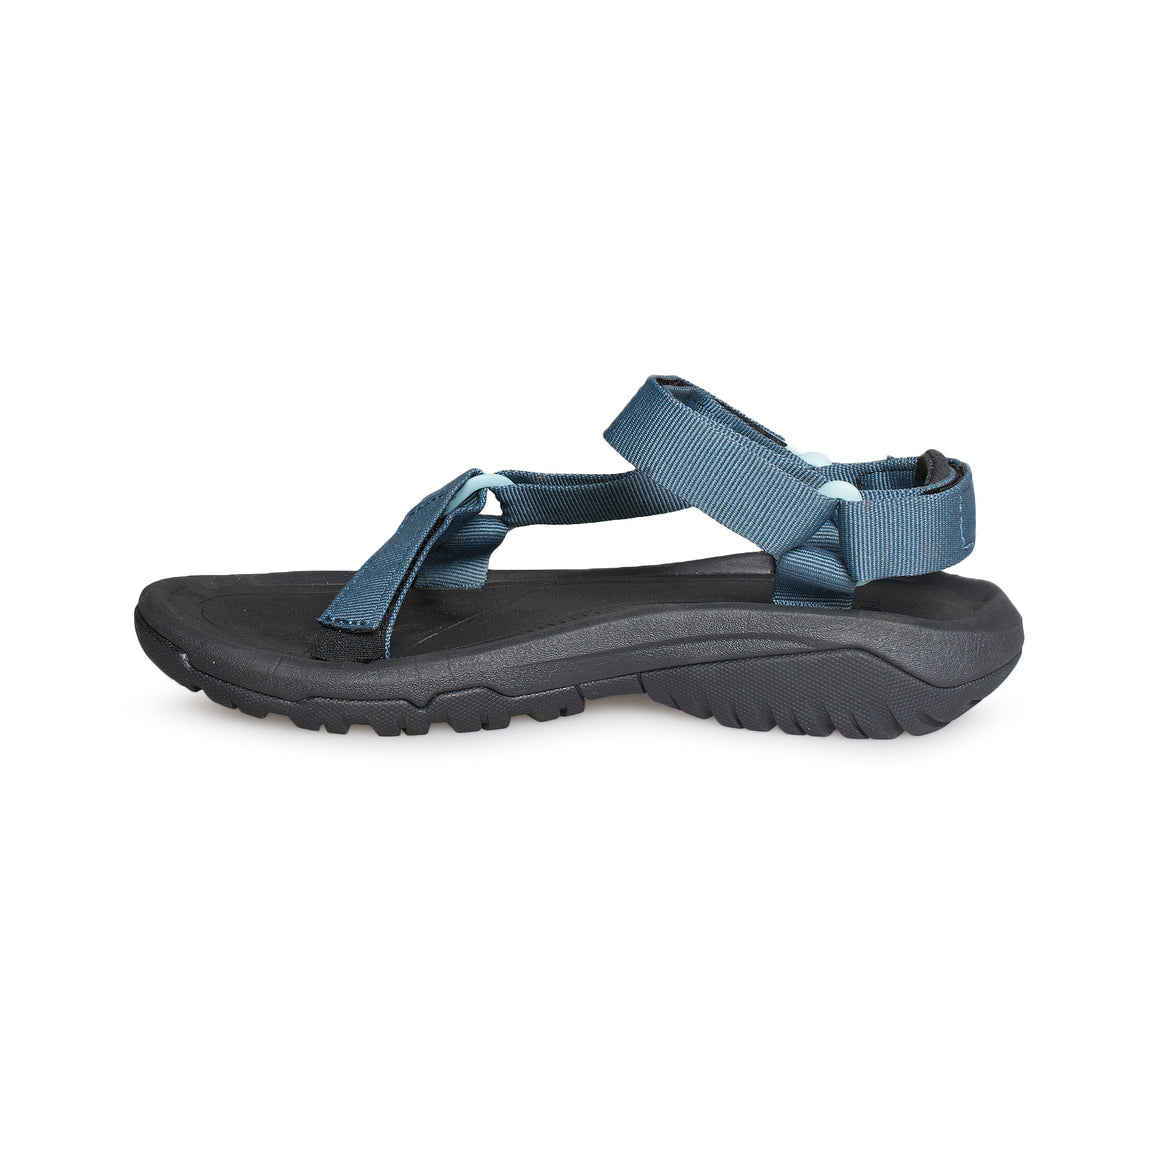 TEVA Hurricane XLT 2 Indigo Blue Sandals - Women's